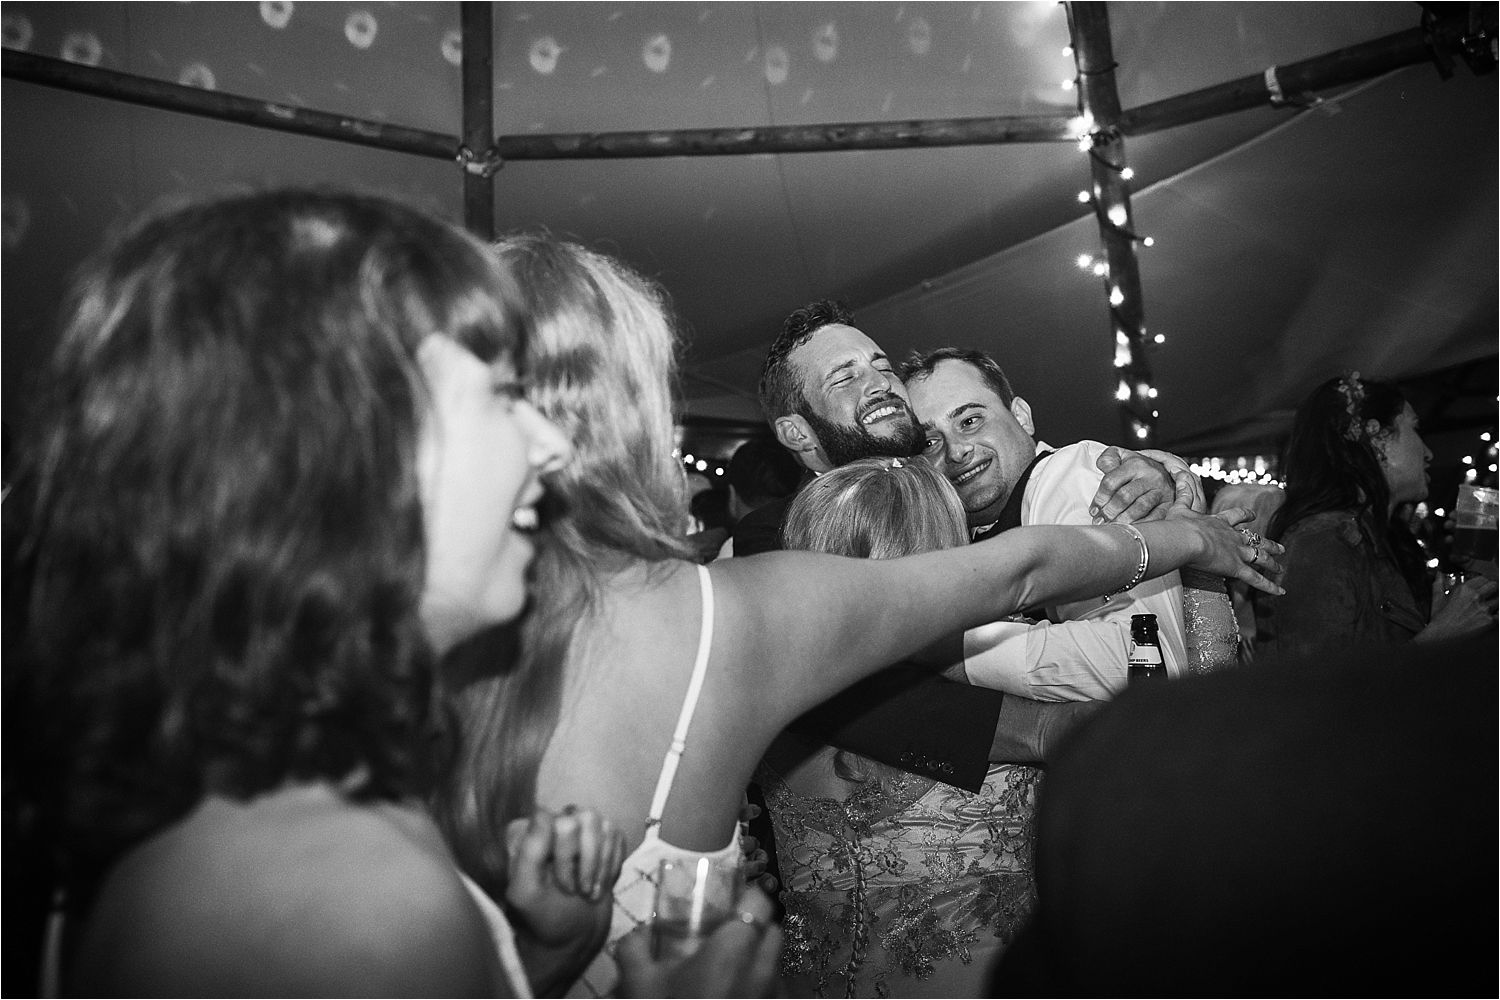 Bride and groom on dancefloor in tipi wedding party